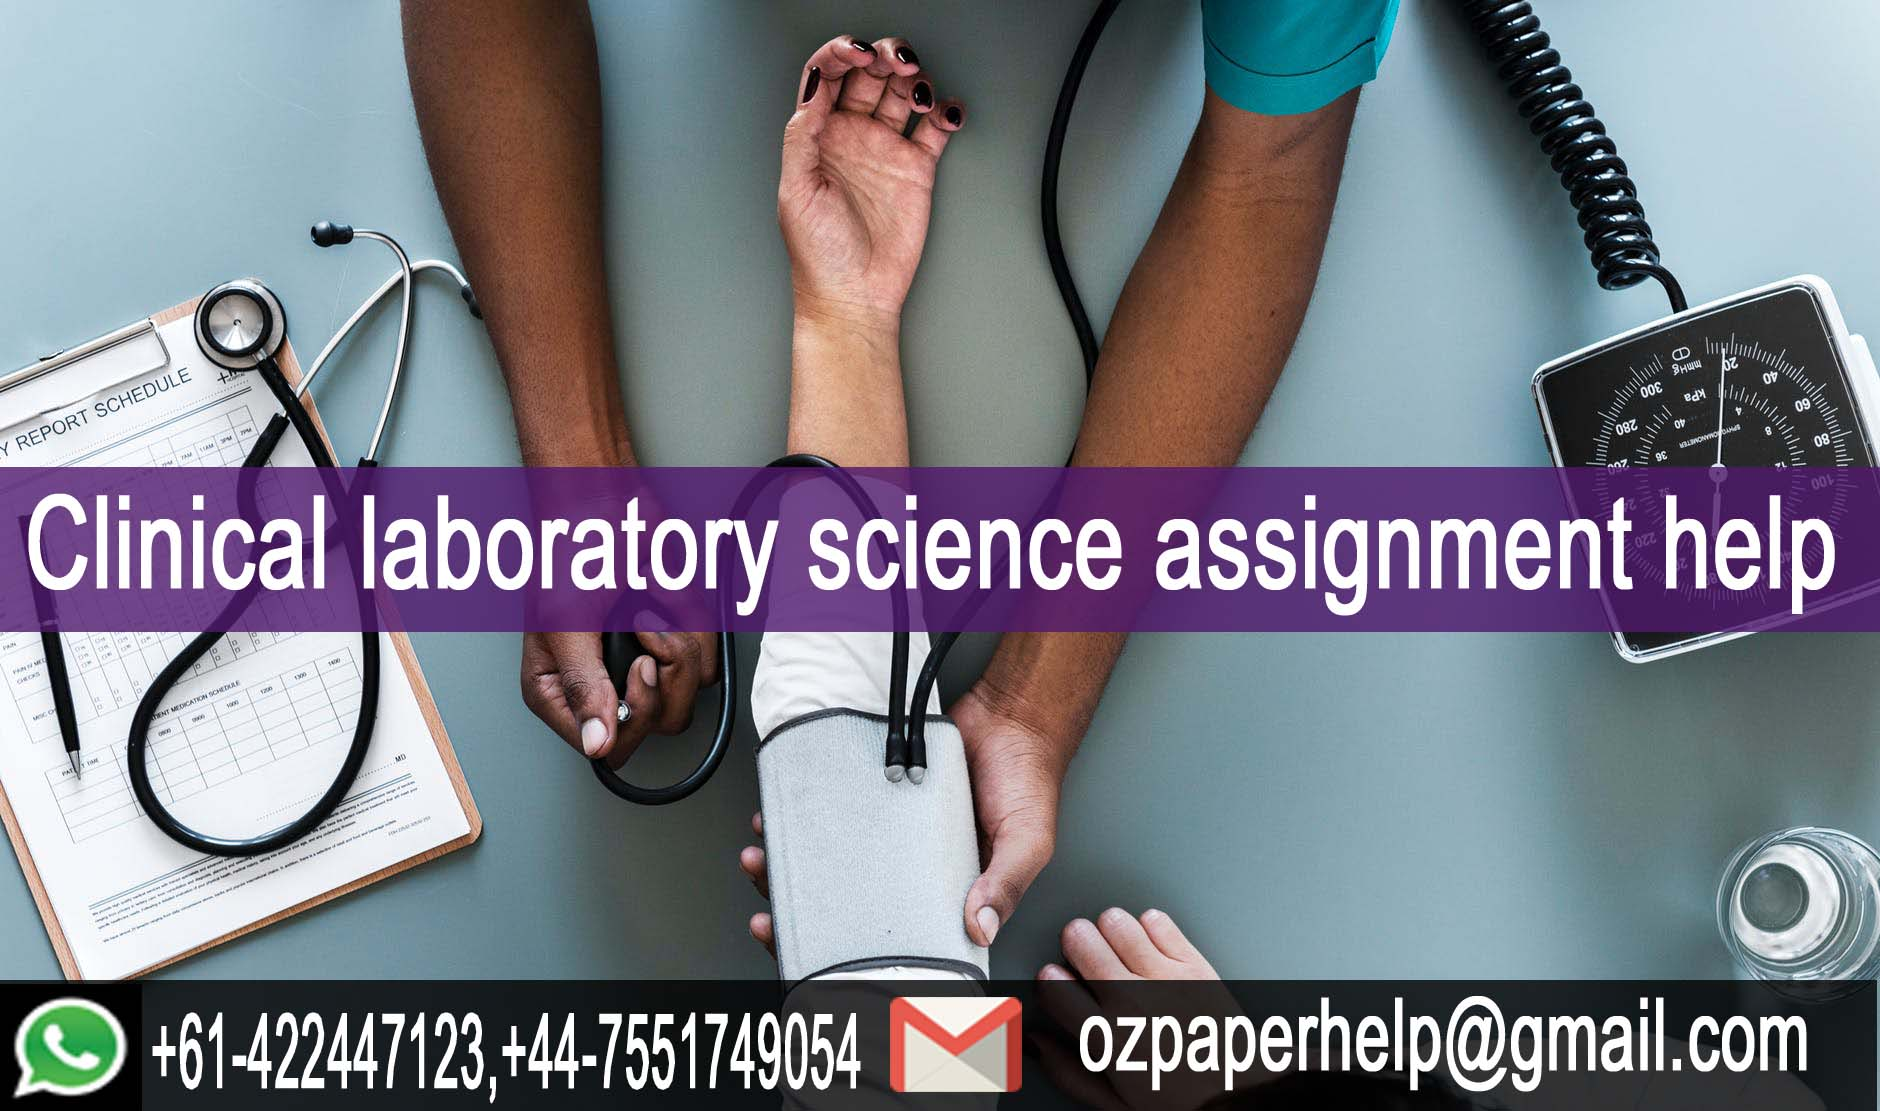 Clinical laboratory science assignment help